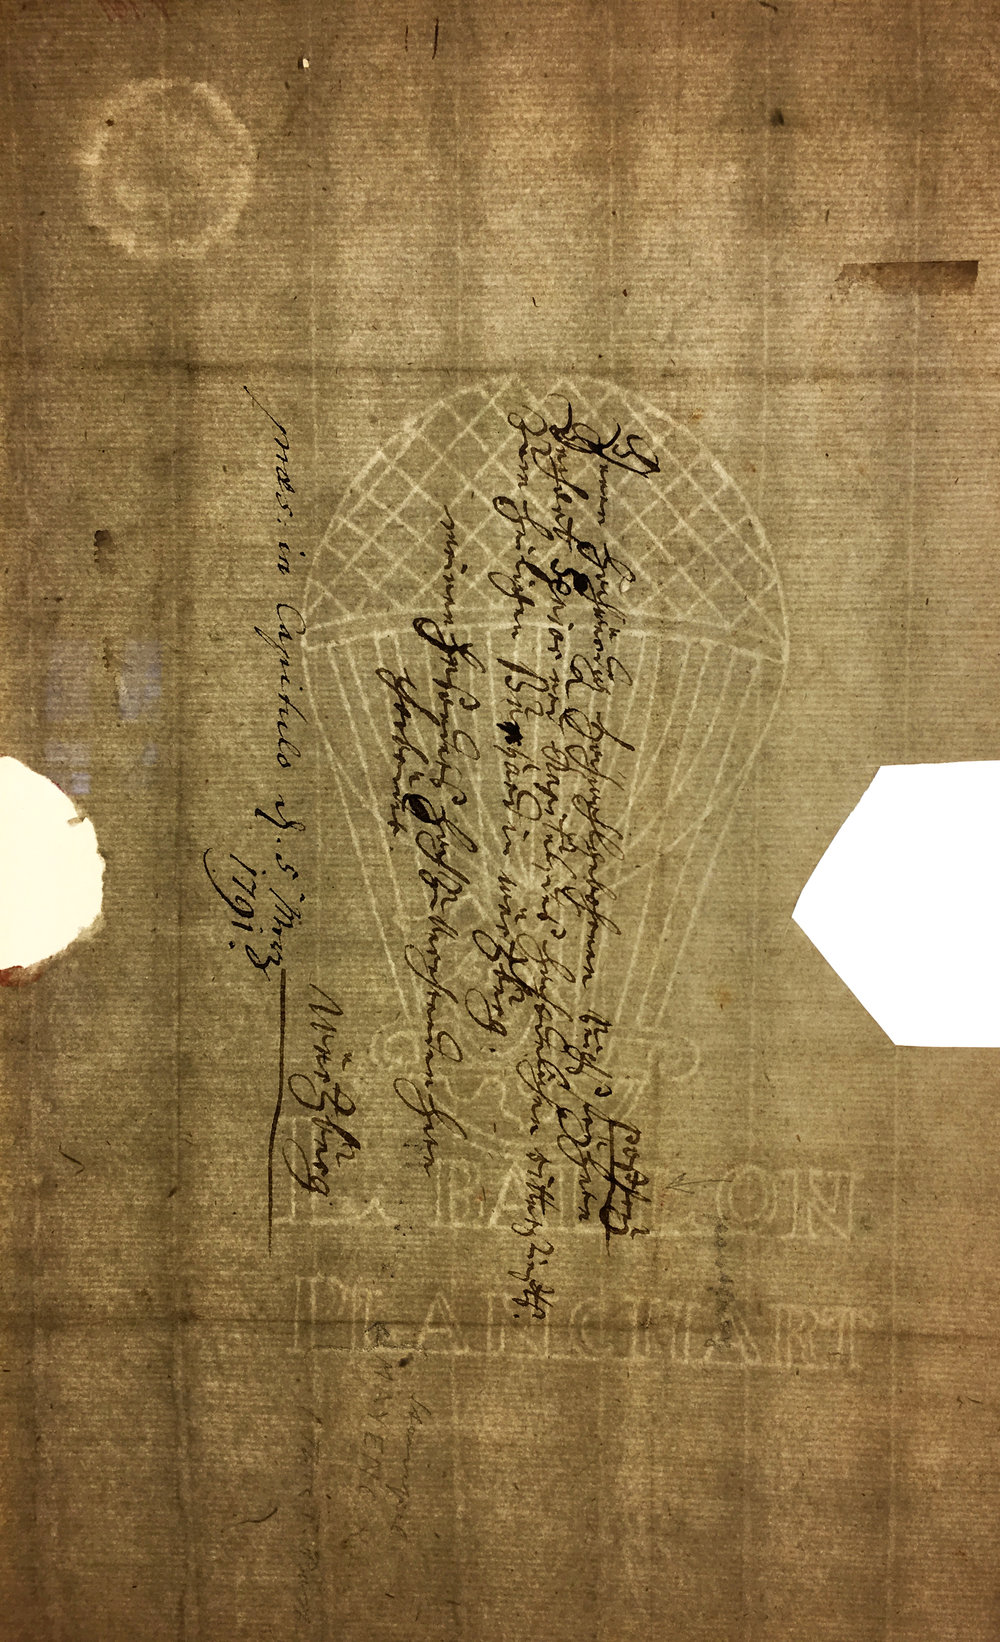 Another example of historic water-marked paper at the Museum